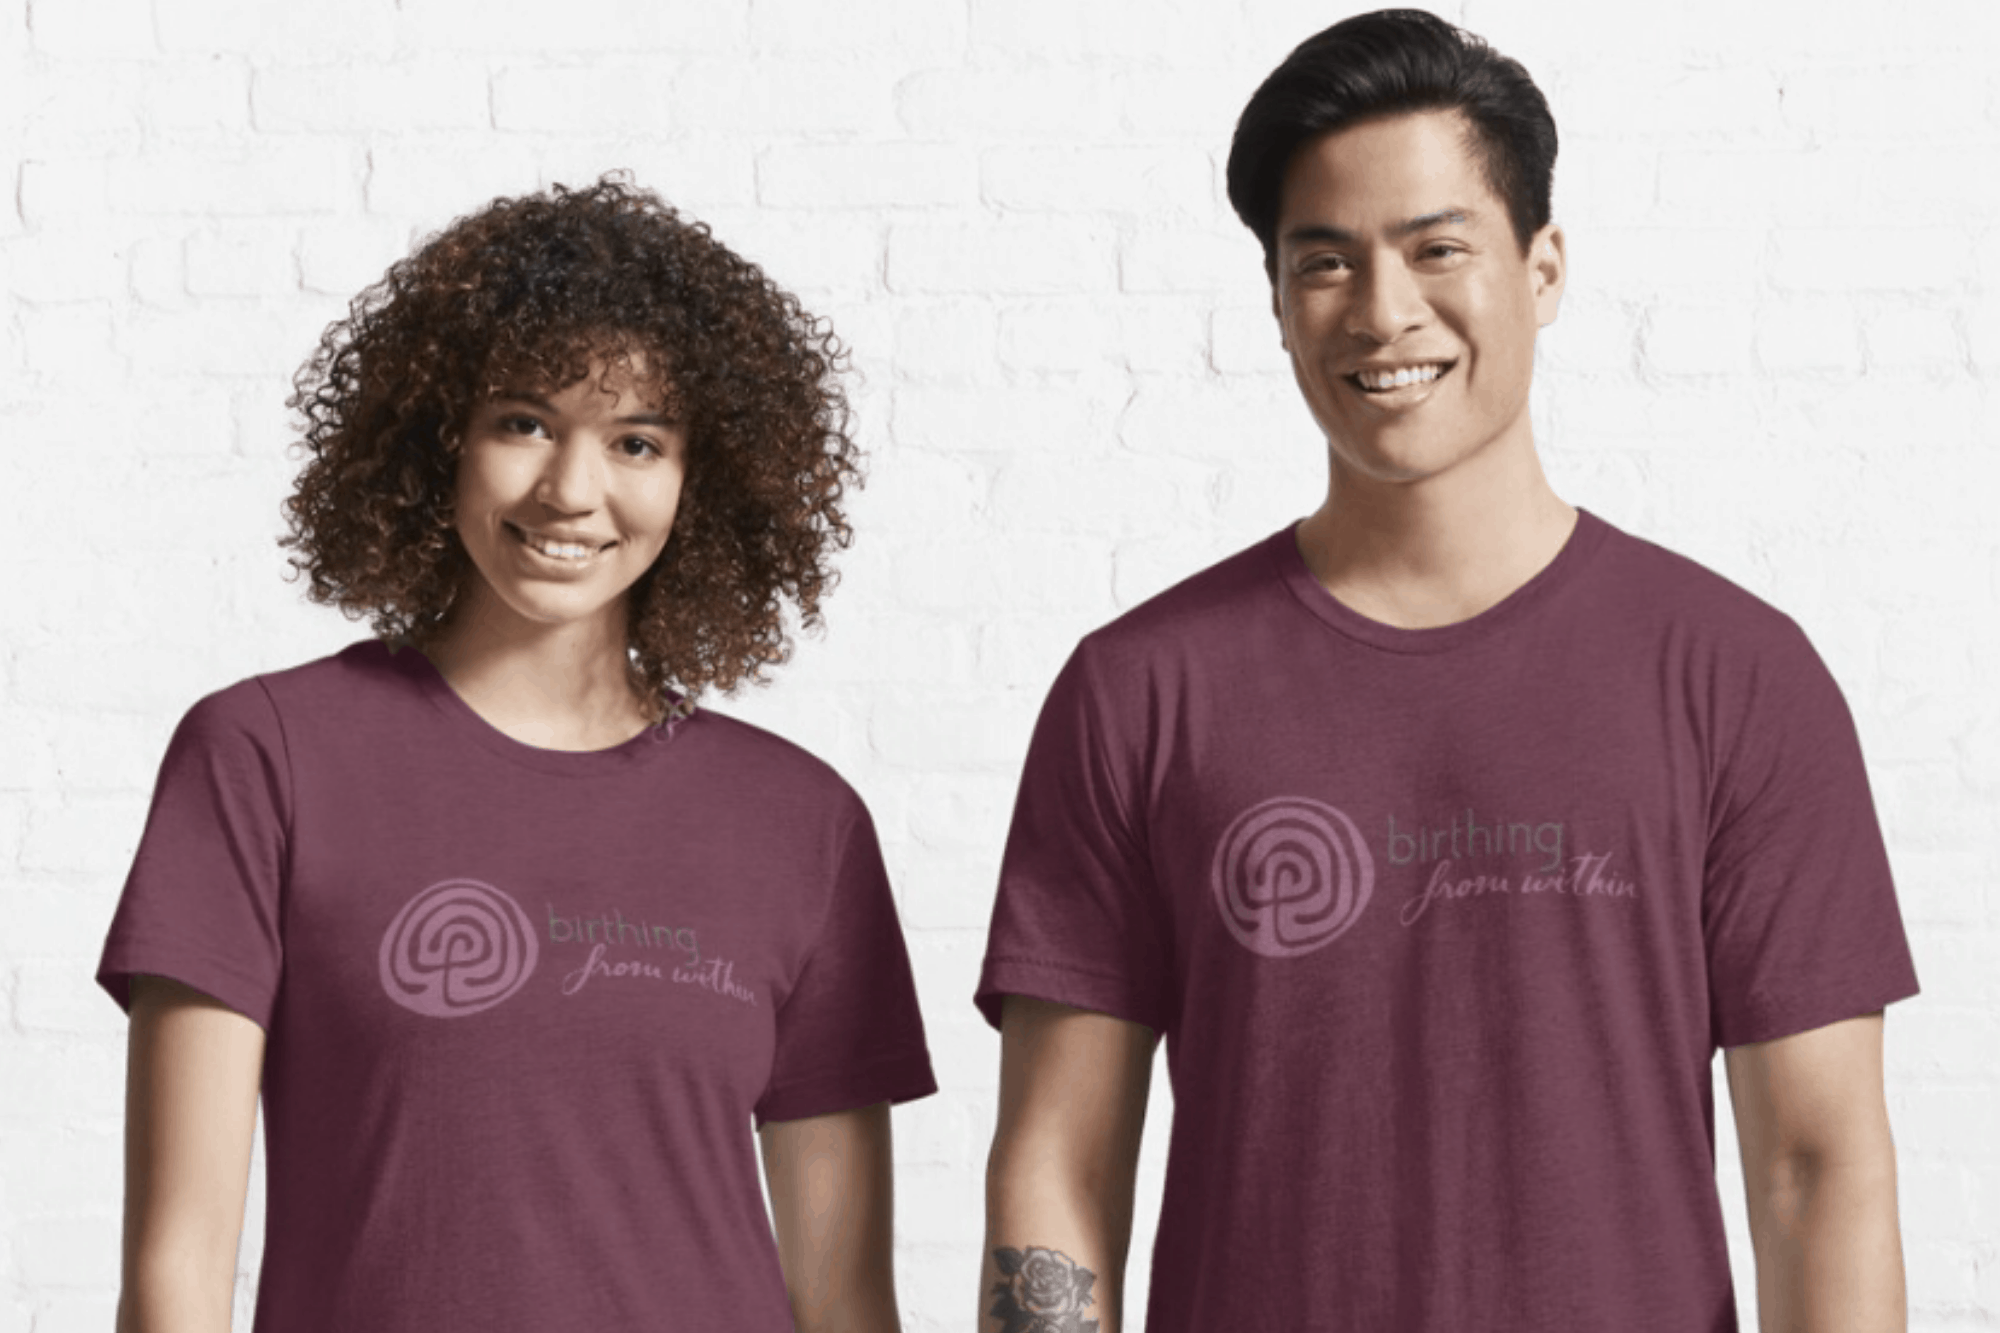 A Woman and Man both wear burgundy Birthing From Within T-shirts